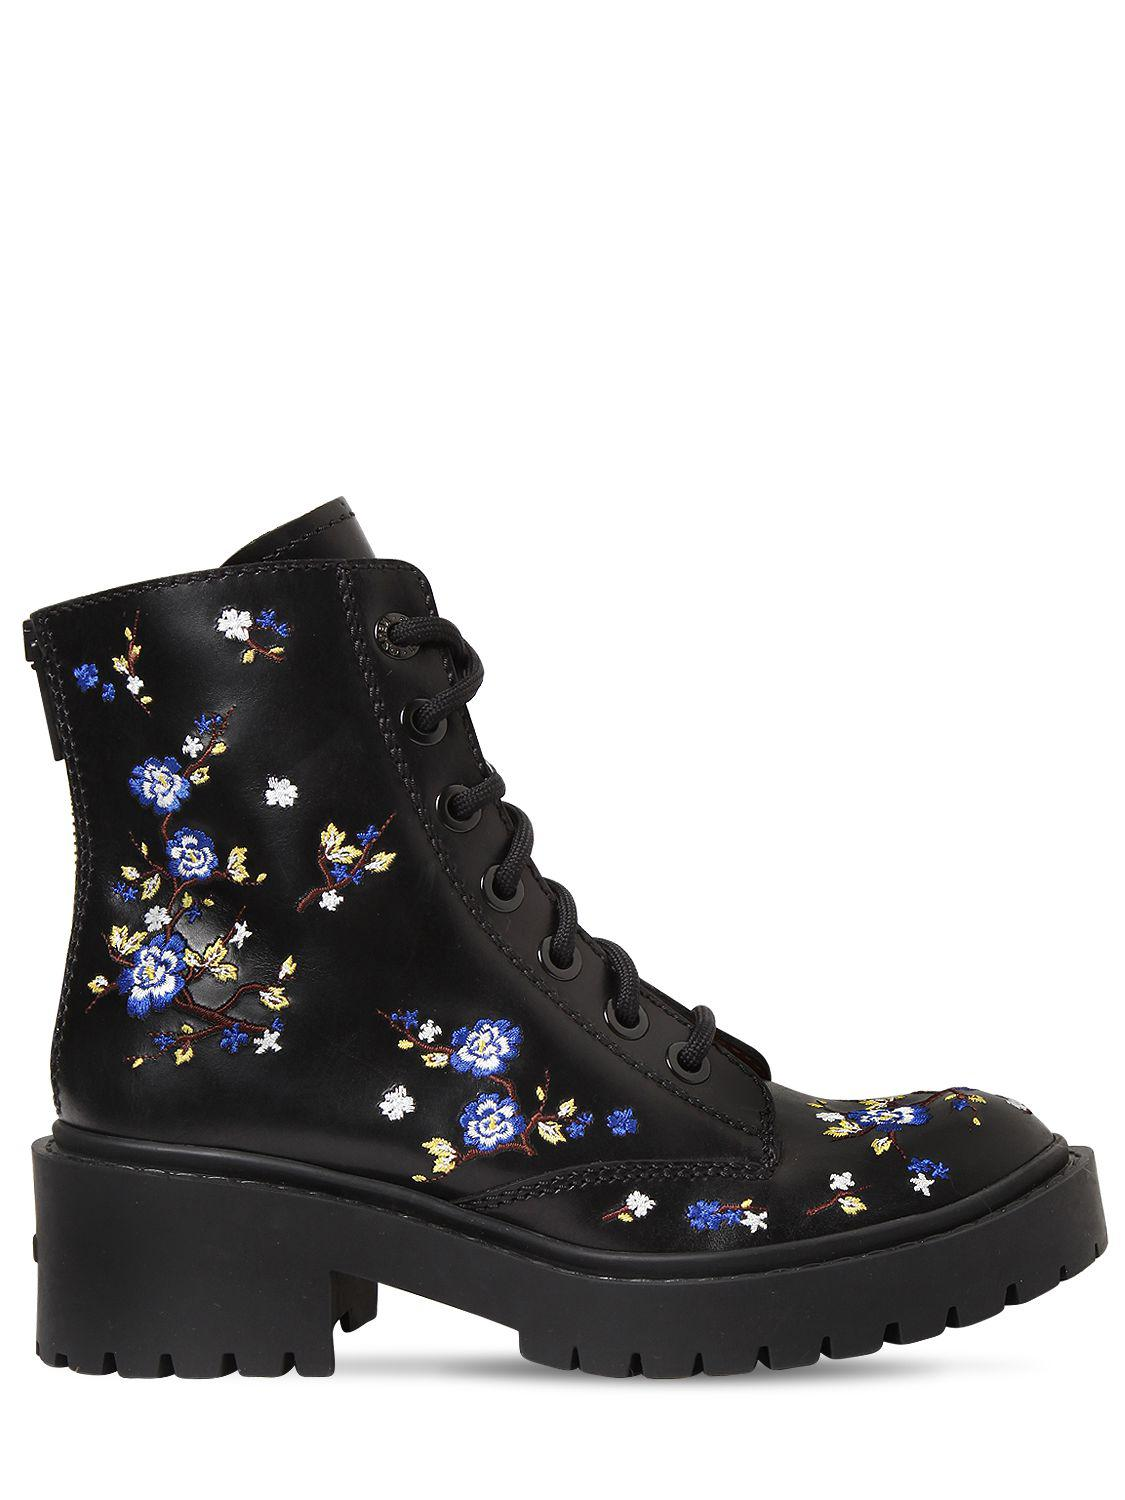 Kenzo 50MM FLORAL EMBROIDERED LEATHER BOOTS QFheJj1